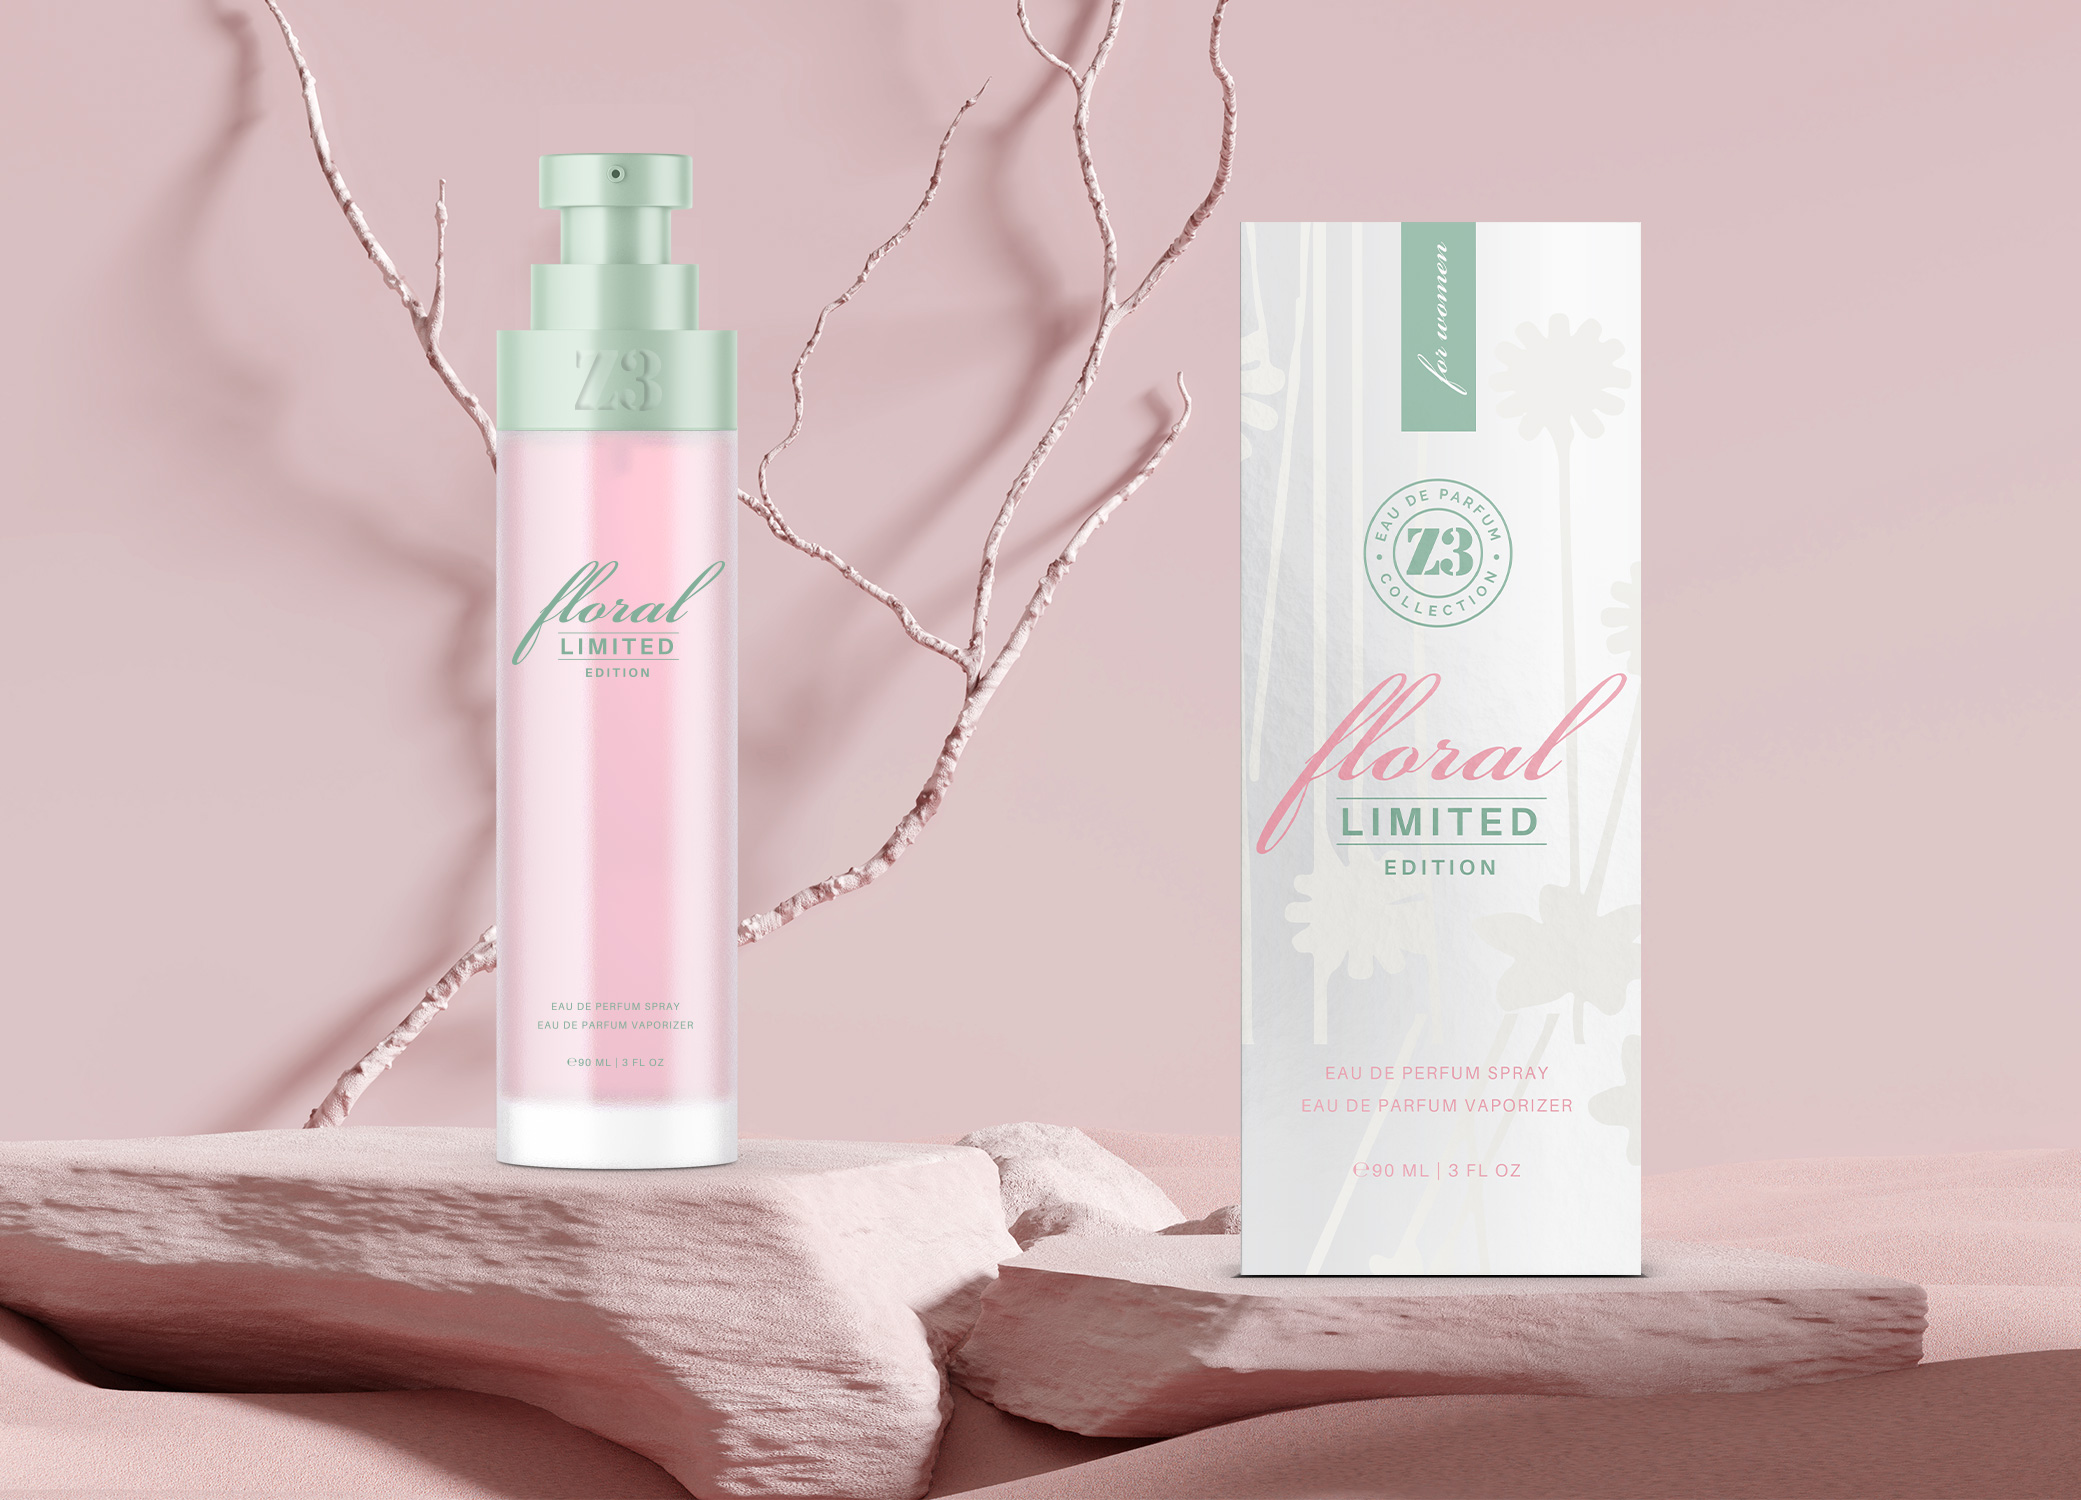 YZY Perfume women's fragrance bottle and package design in pink, green, white, and silver with flower elements for Z3 Floral product.